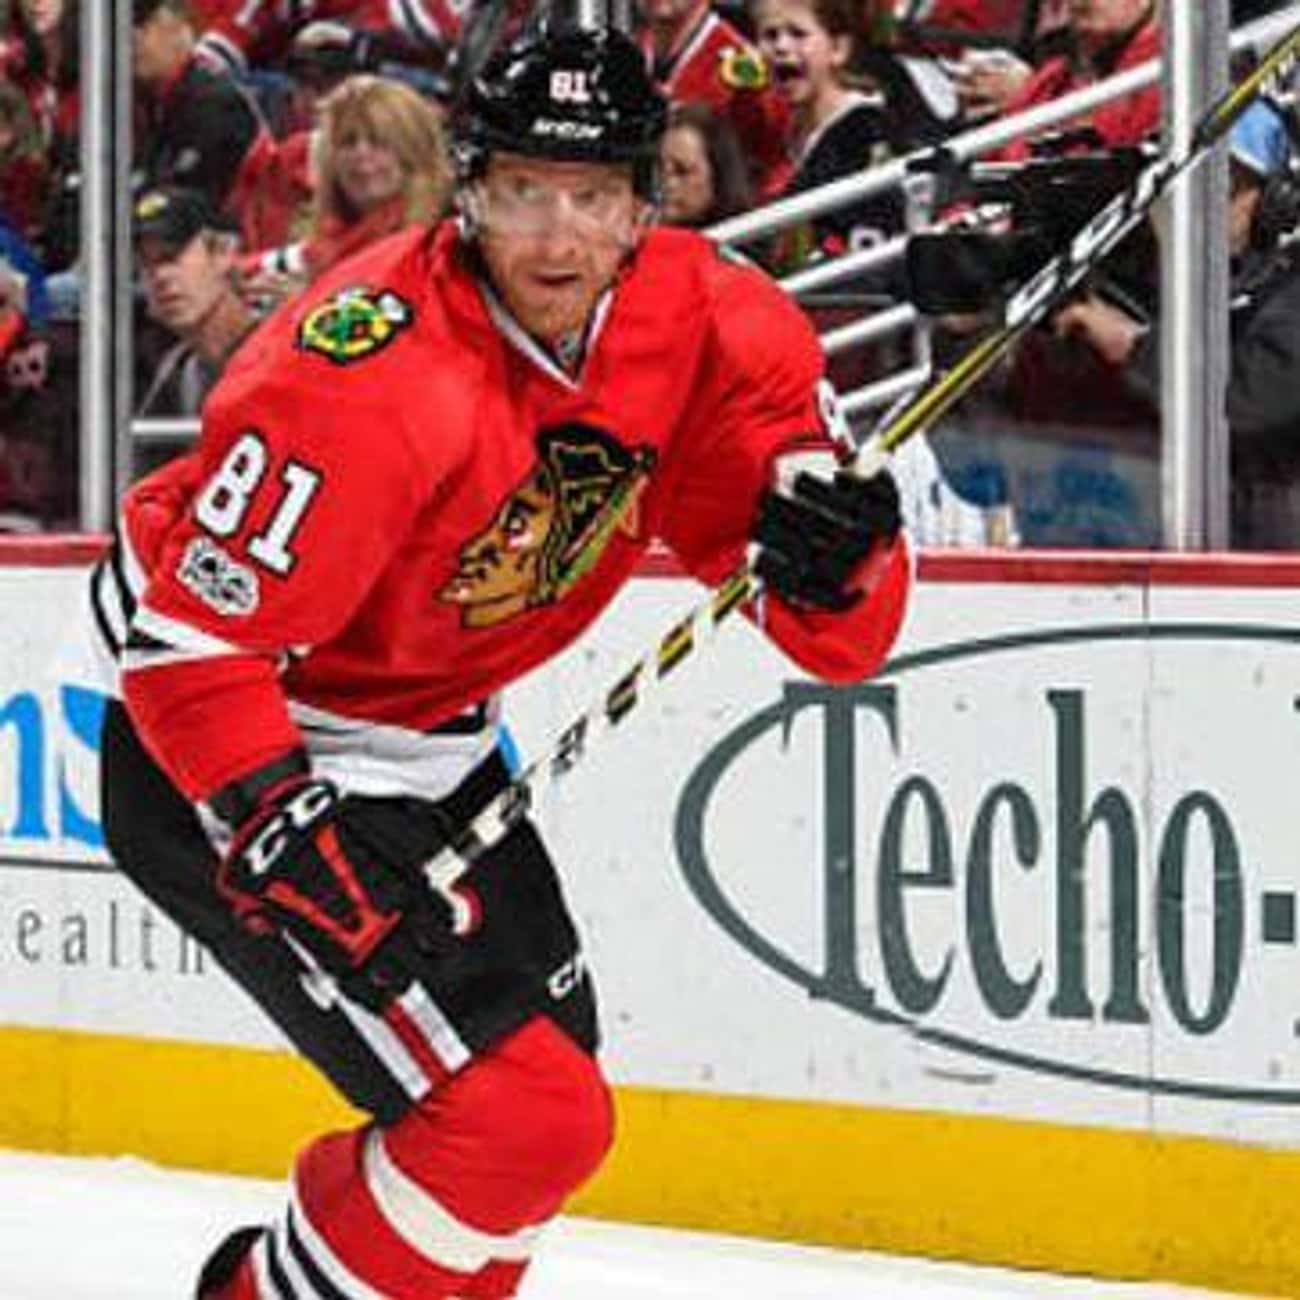 Marián Hossa is listed (or ranked) 2 on the list The Best Athletes Who Wore #81